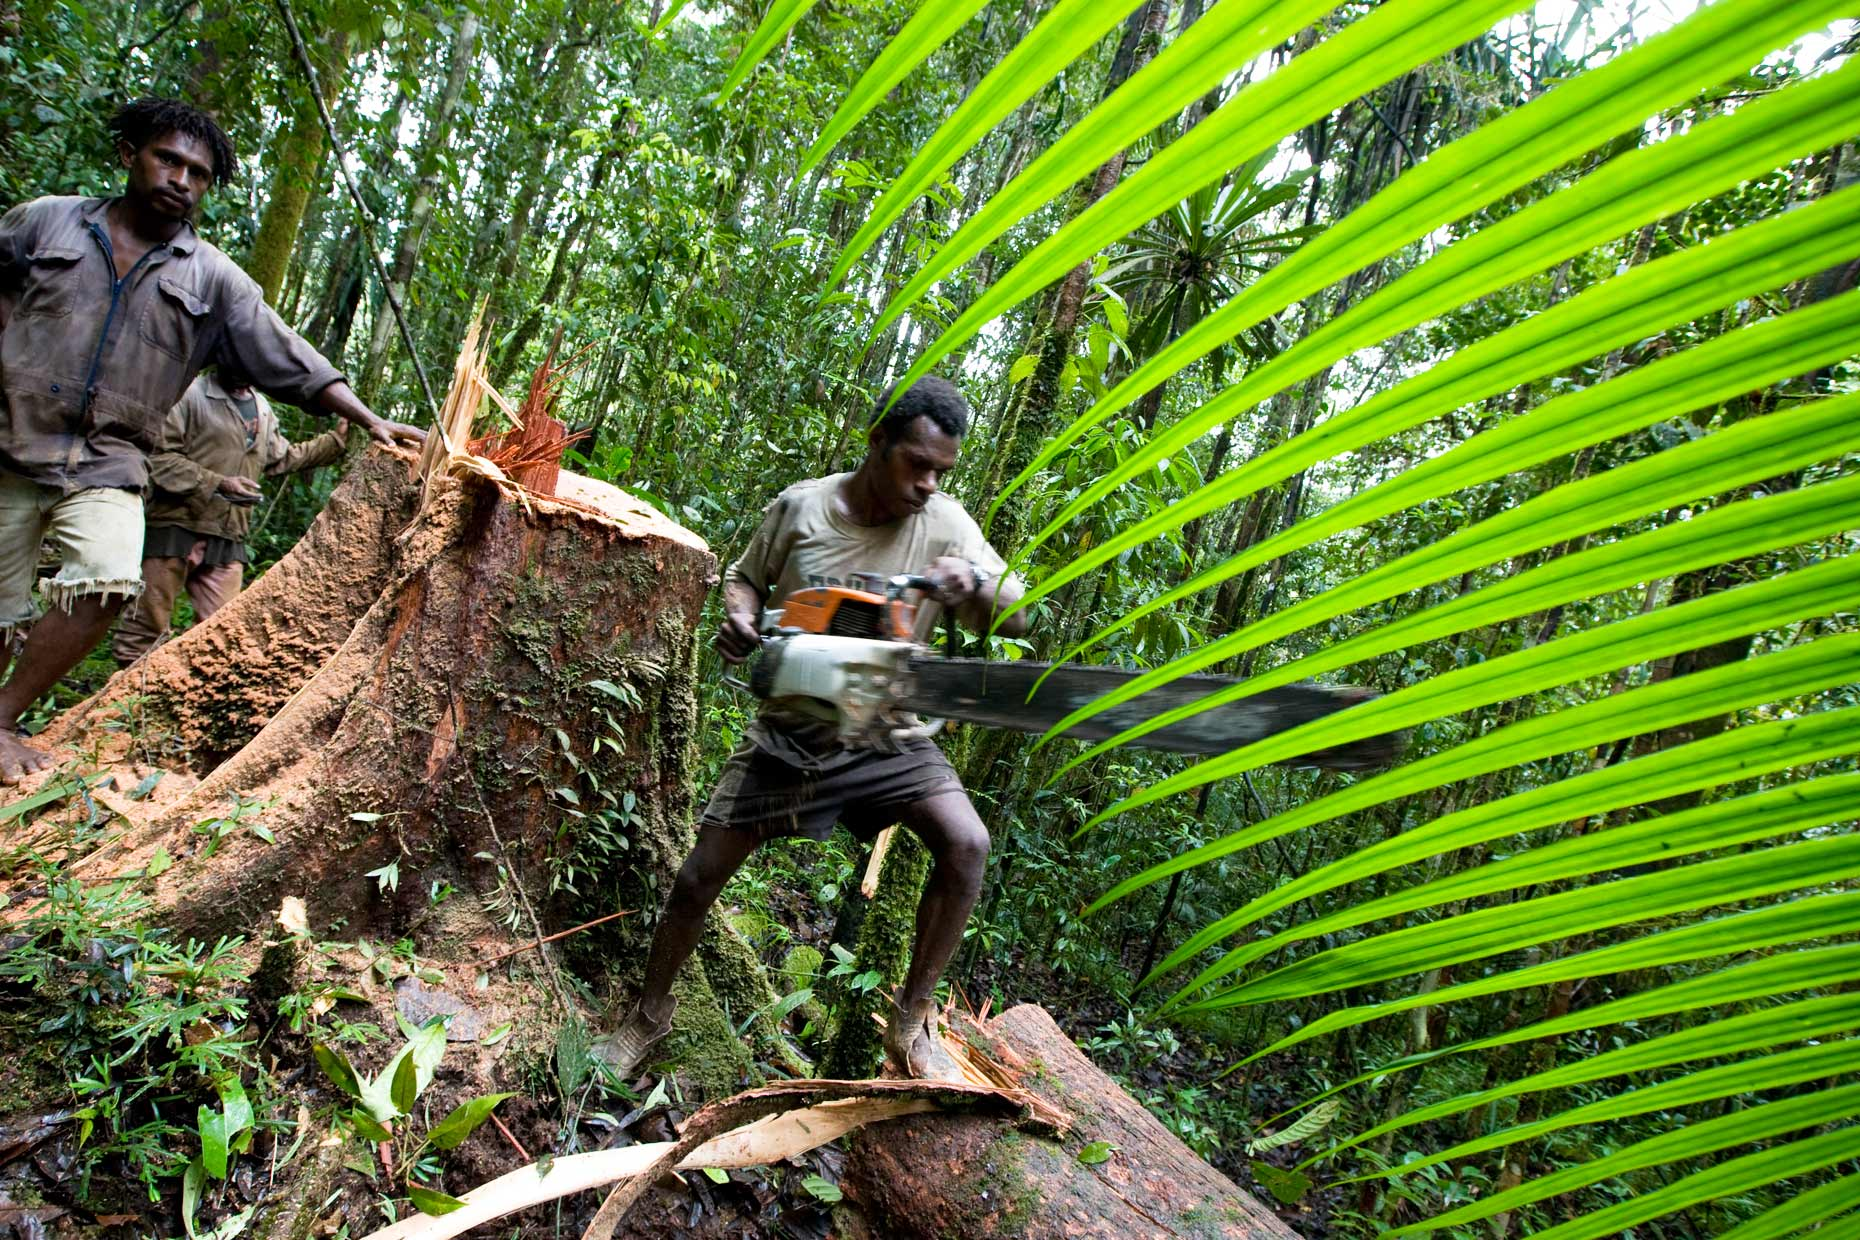 illegal logging in PNG, by Scotland Greenpeace photographer